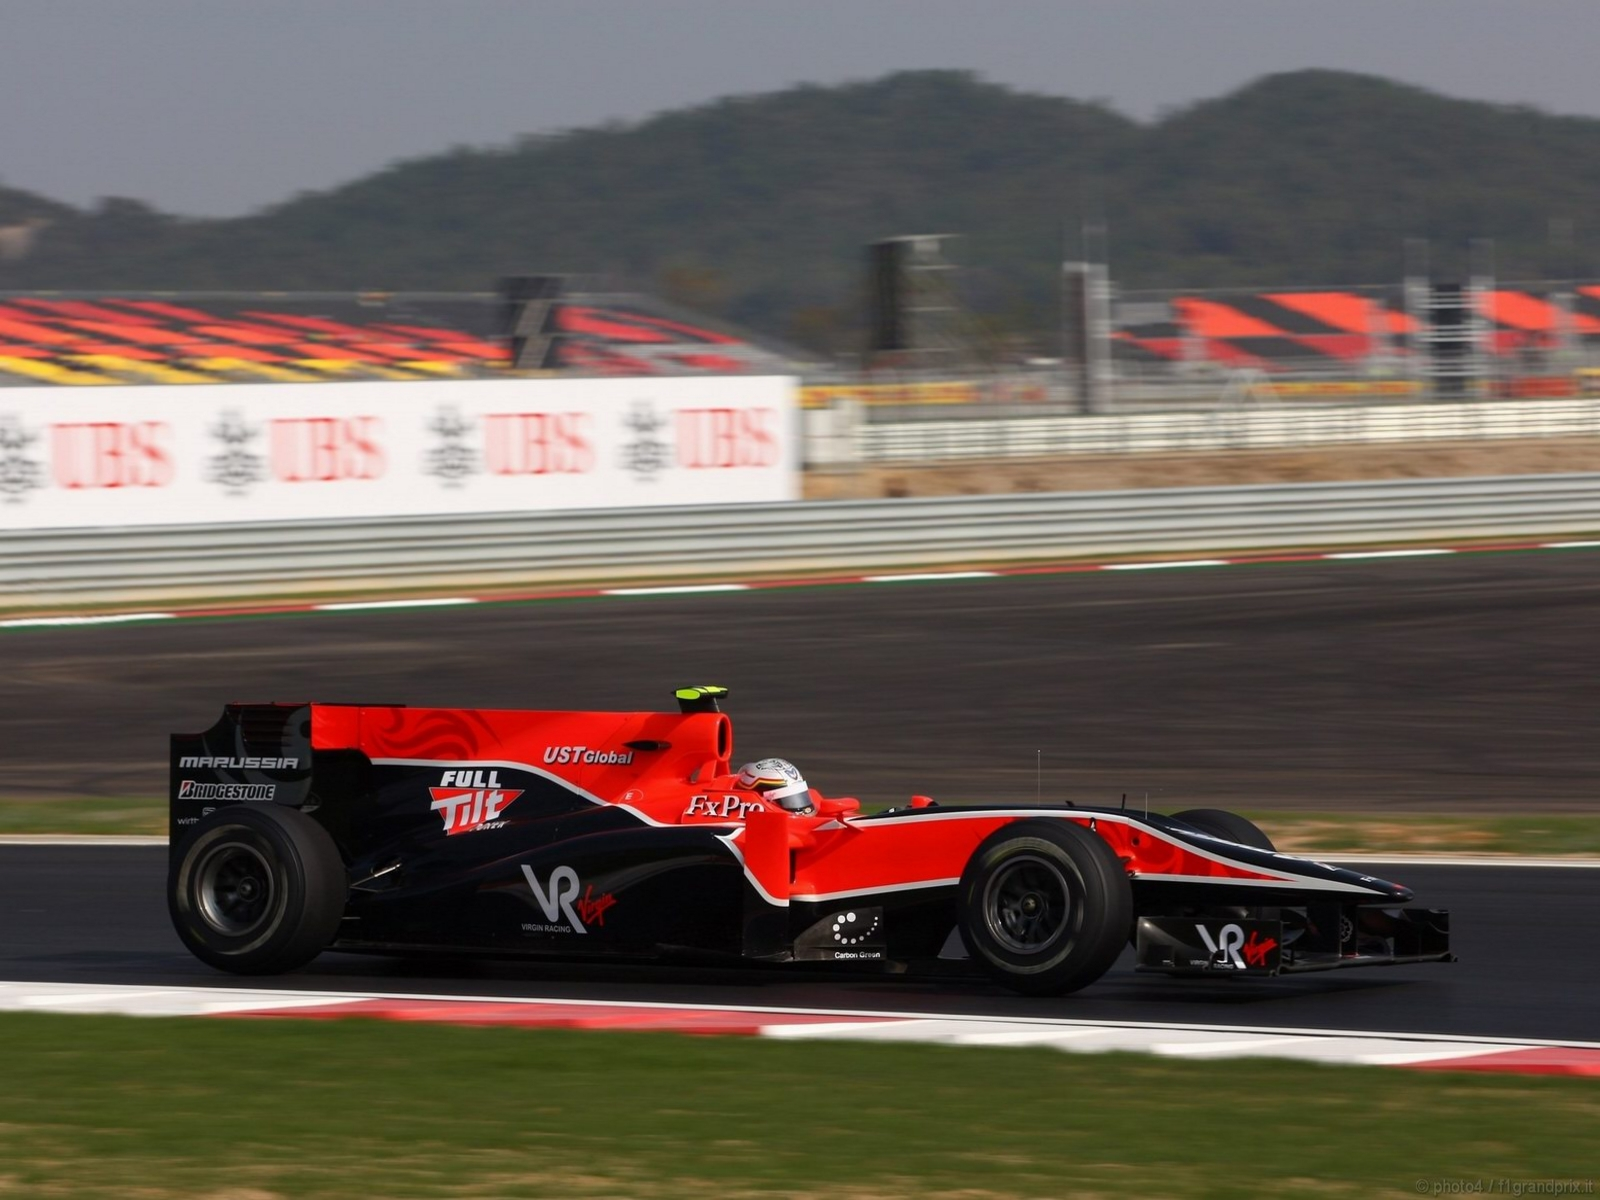 pojazdy - formula1 - gp_corea_wallpapers_000011